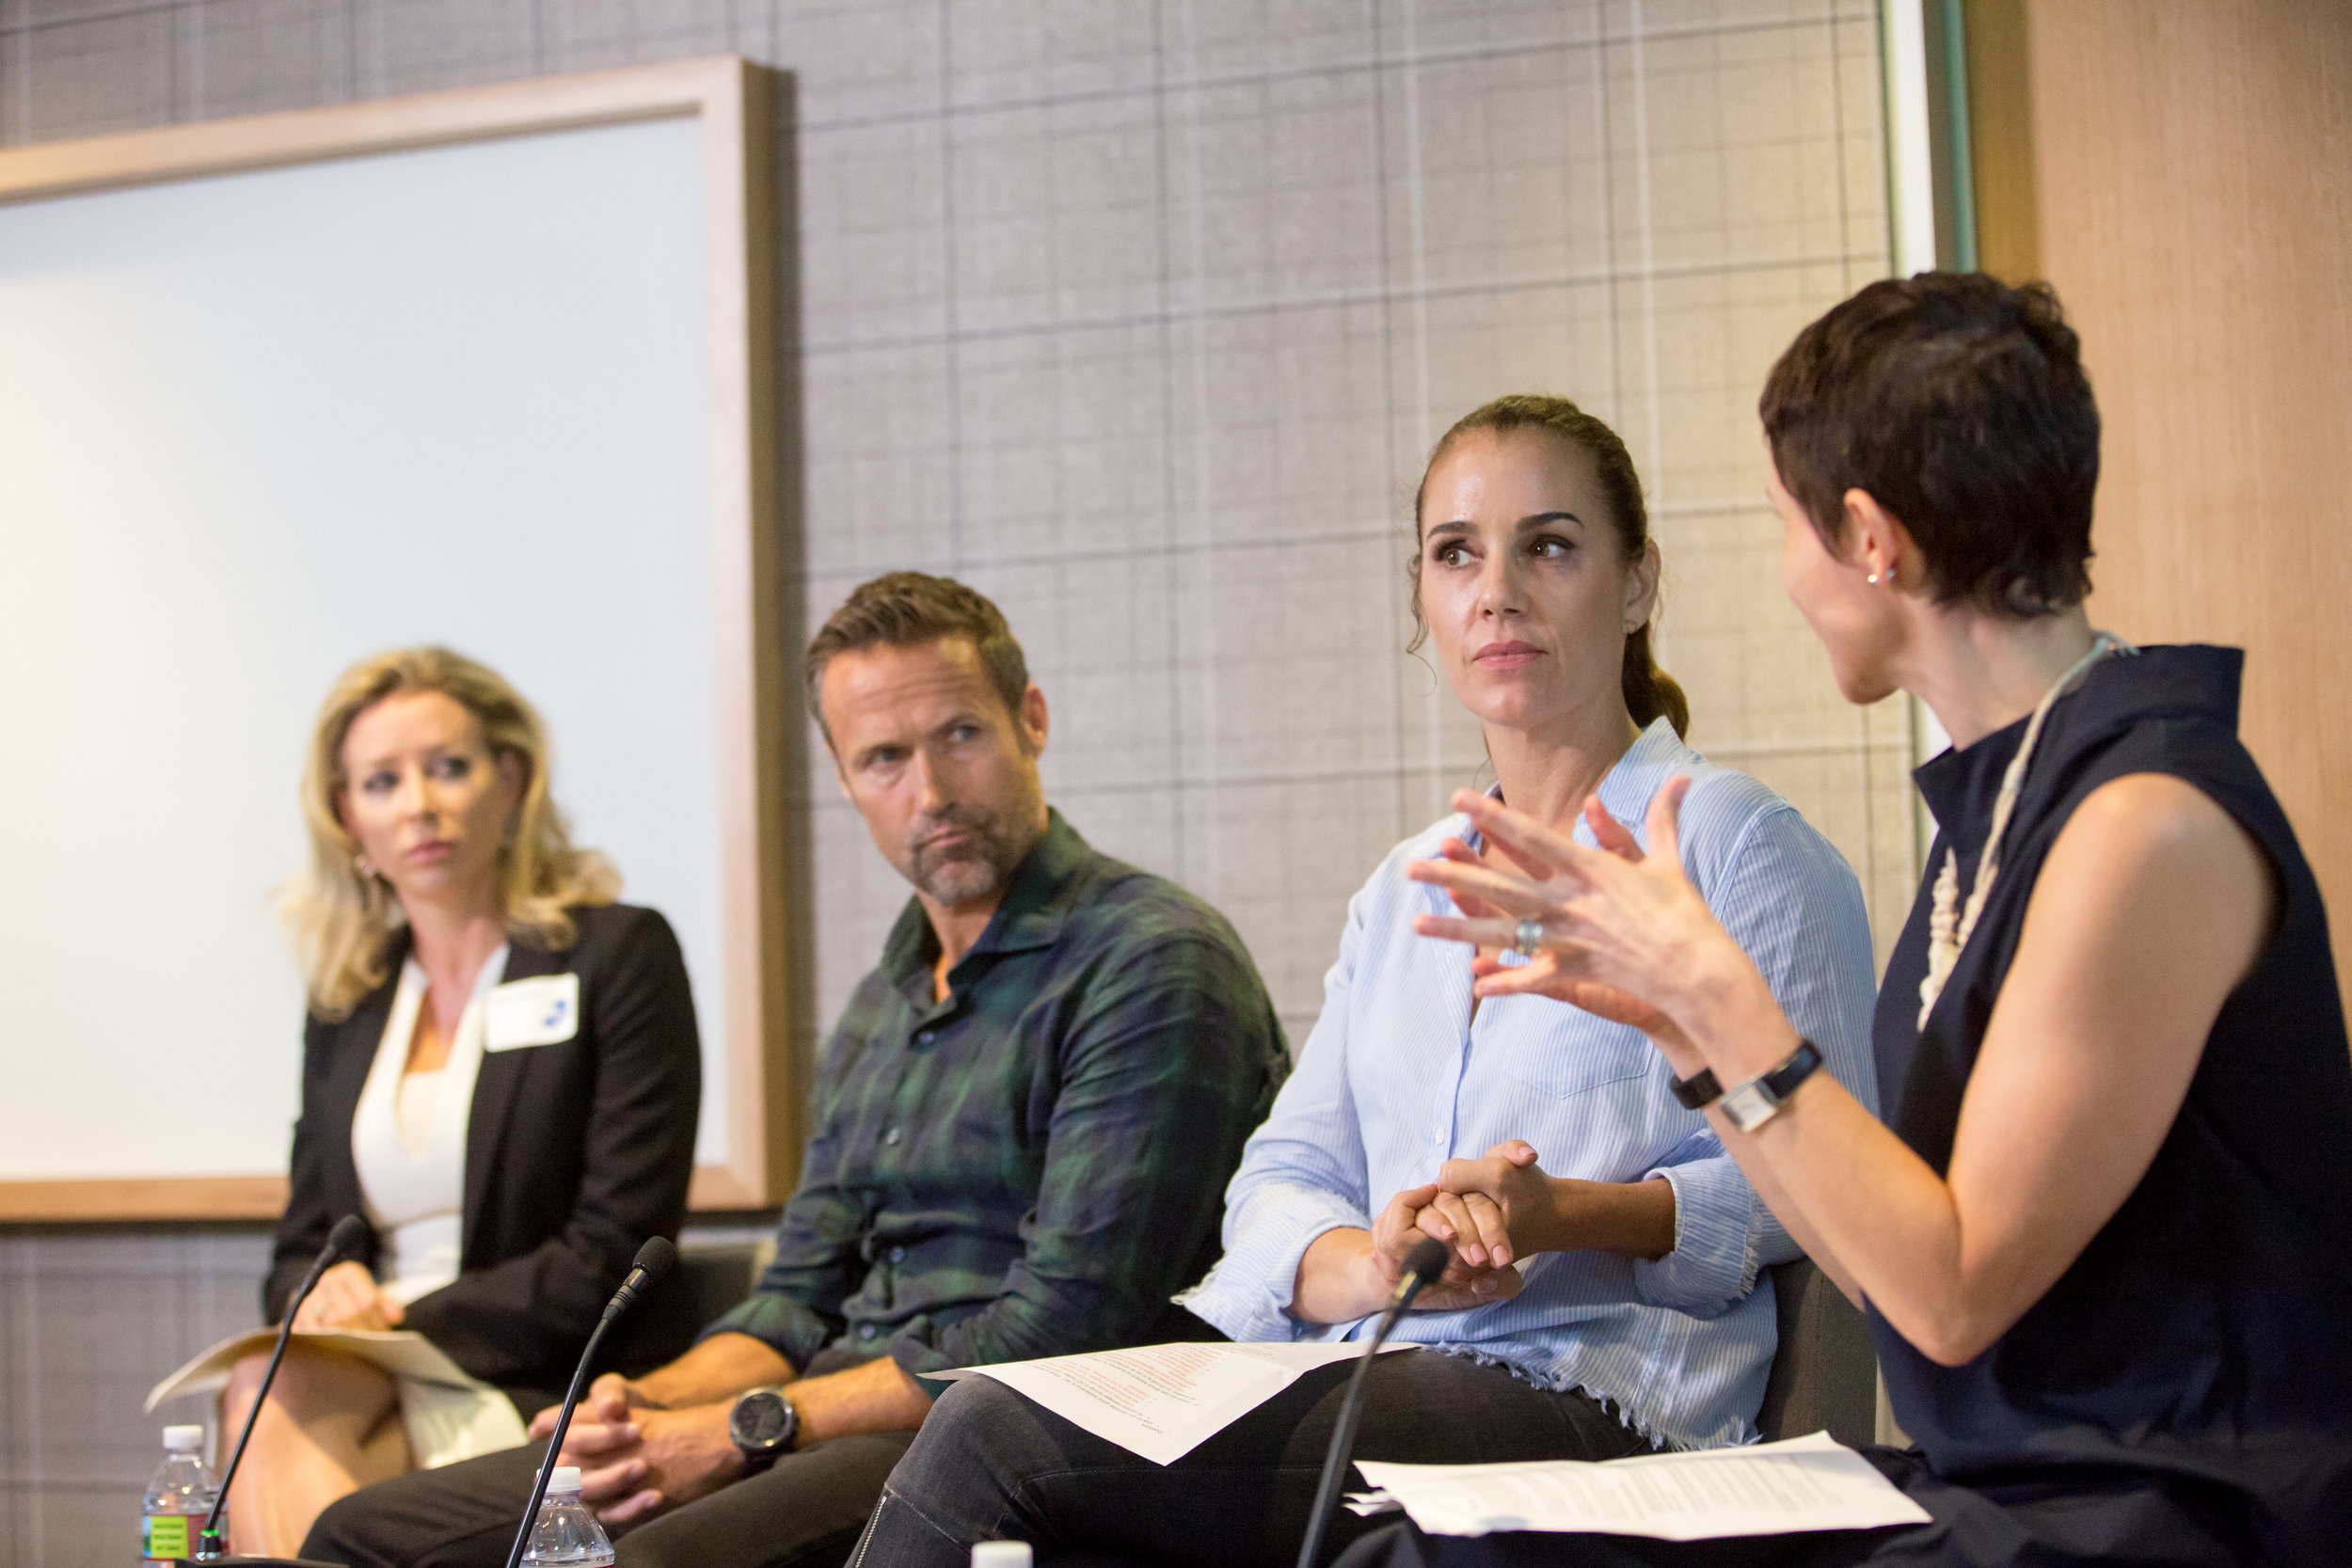 From left to right: Melissa Taunton (NEA), Andy Price (Index Ventures), Gia Scinto (Y Combinator), and Hilary Gosher (Insight Venture Partners).